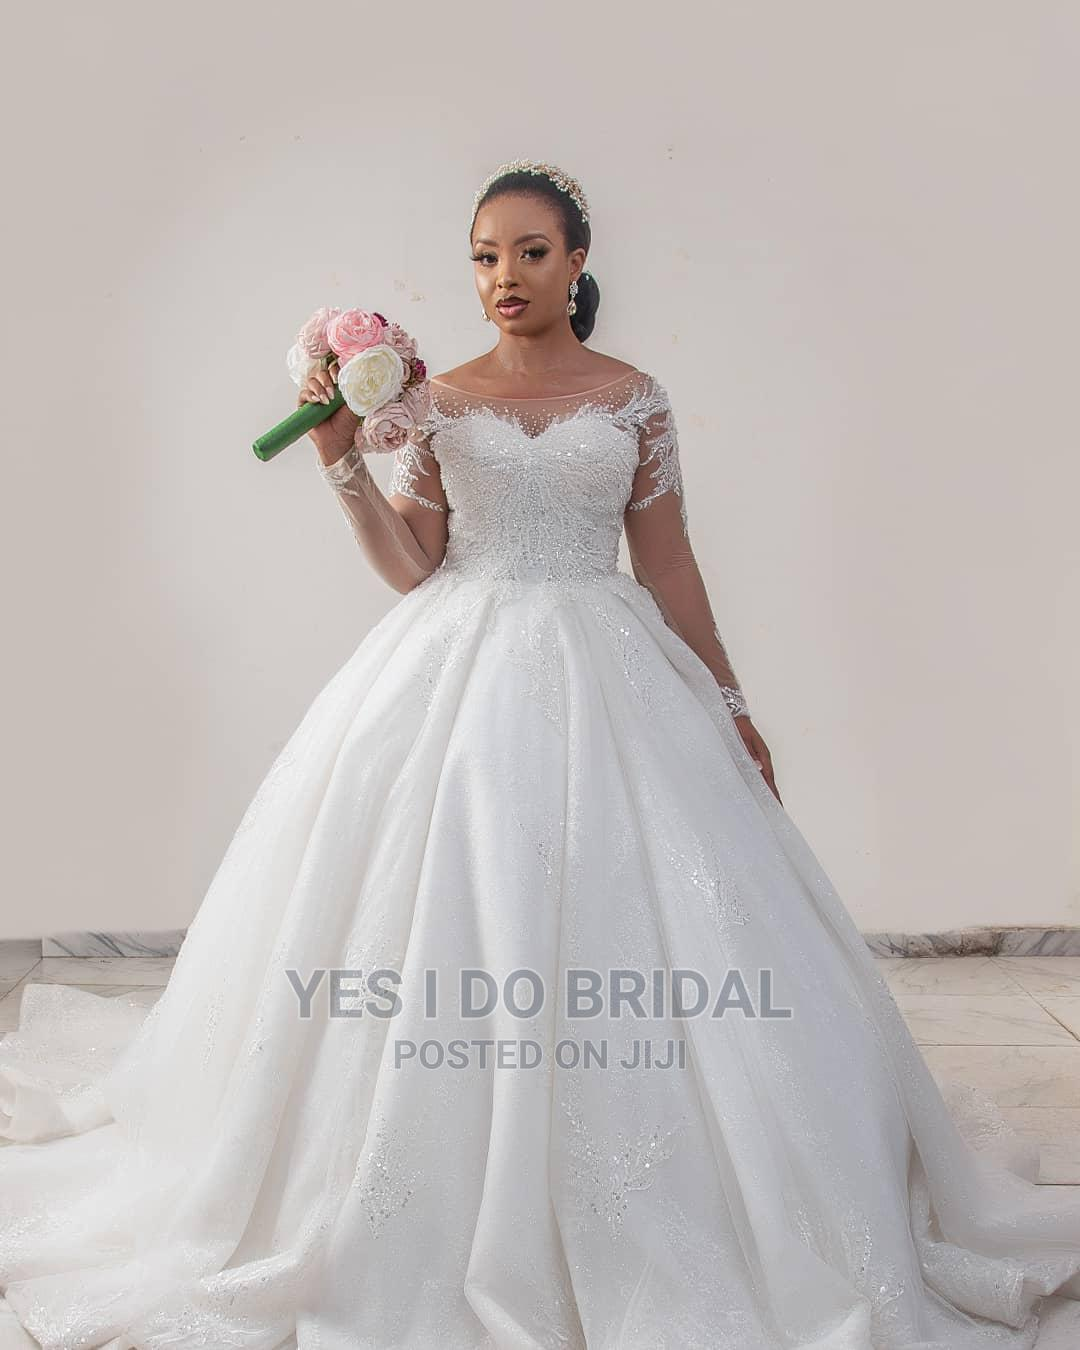 Archive Luxury Wedding Gown on Rent 18K + 18 Free Bridal ...